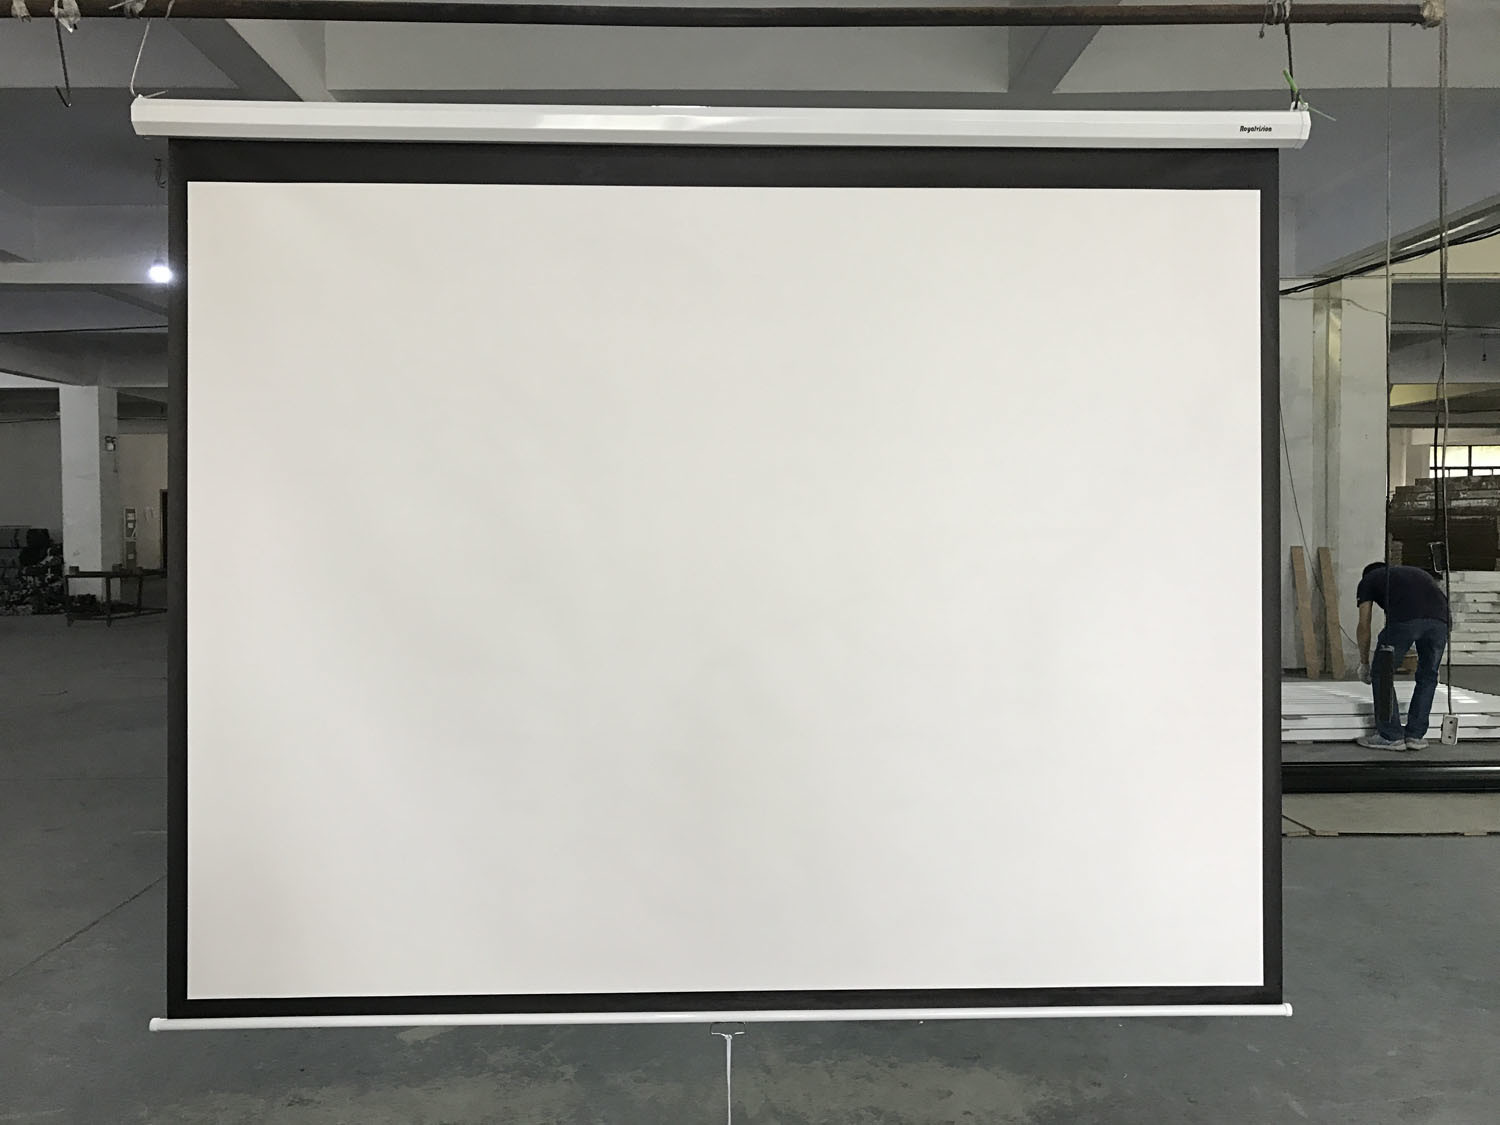 China Ceiling Wall Mount Motorized Tab Tensioned Projection Screen Overhead Projector